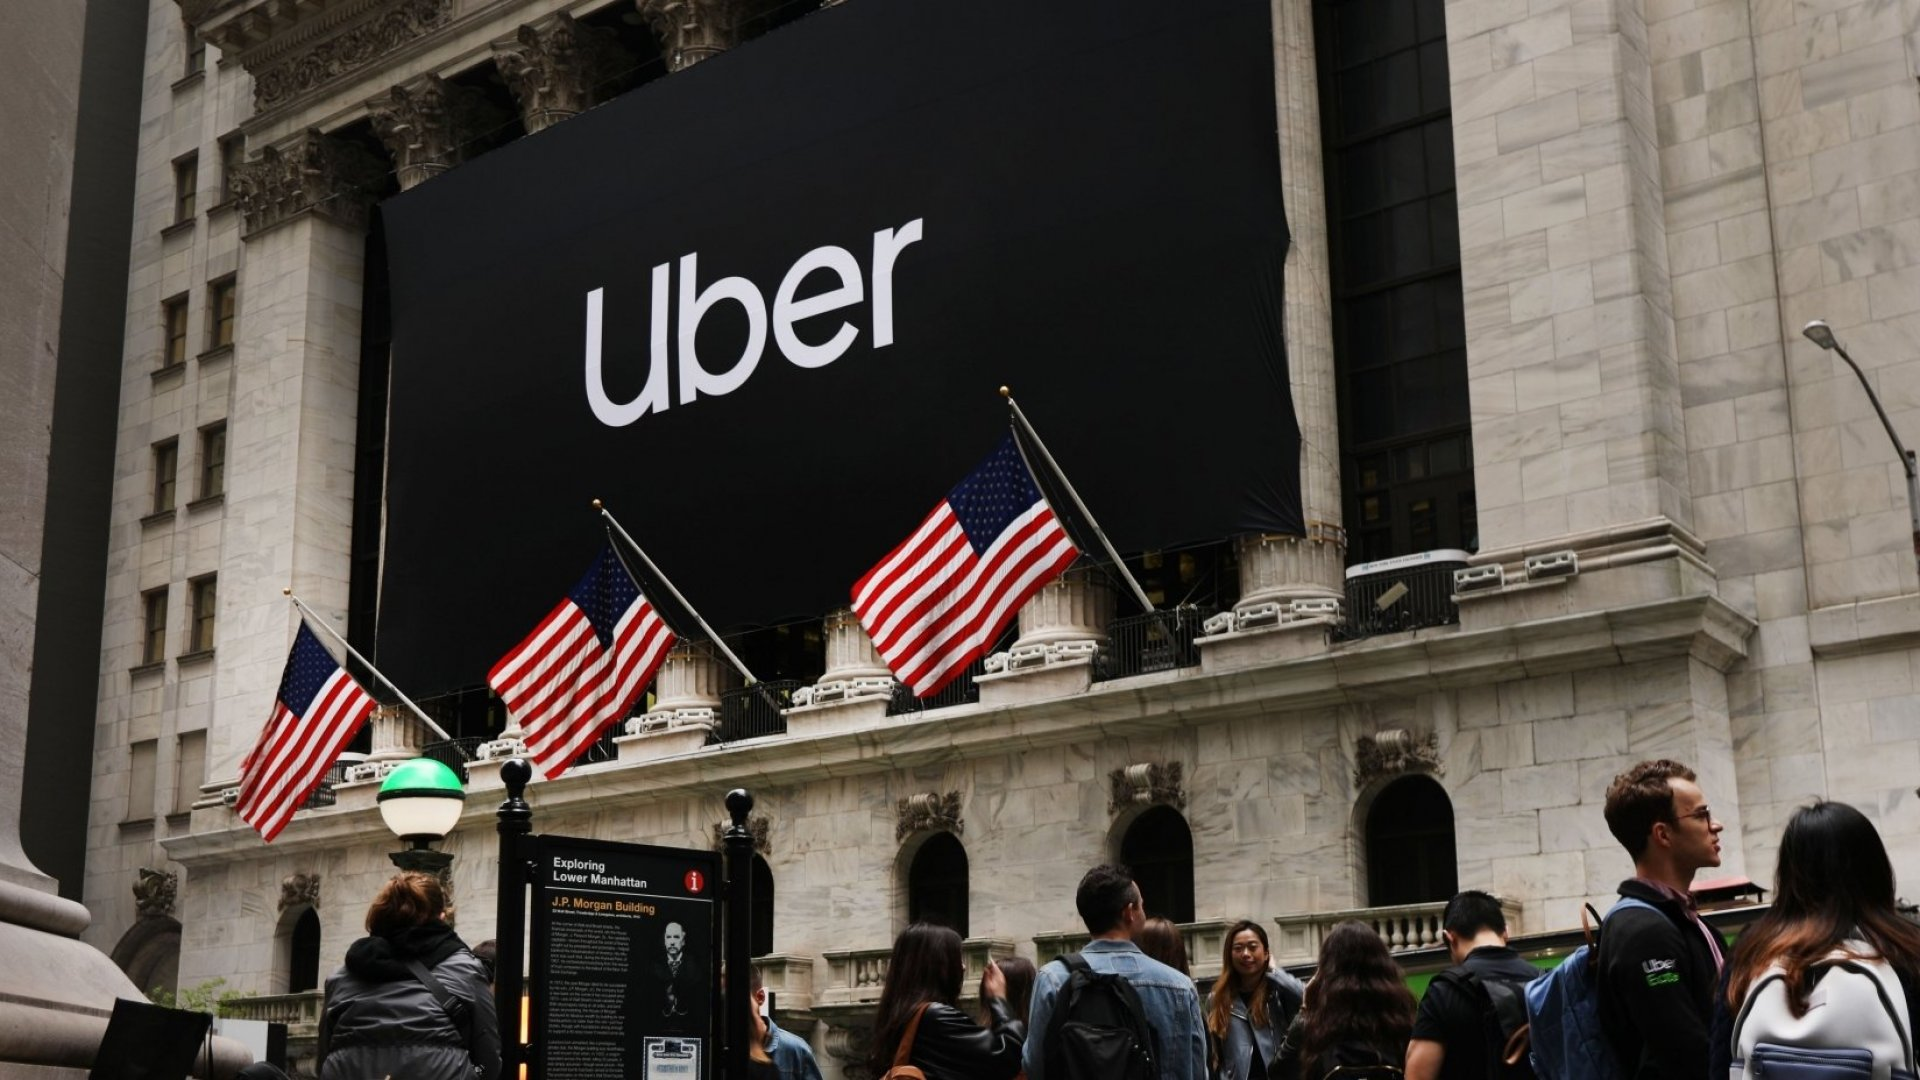 Uber Just Posted a $5.2 Billion Loss, Its Largest Quarterly Loss Ever